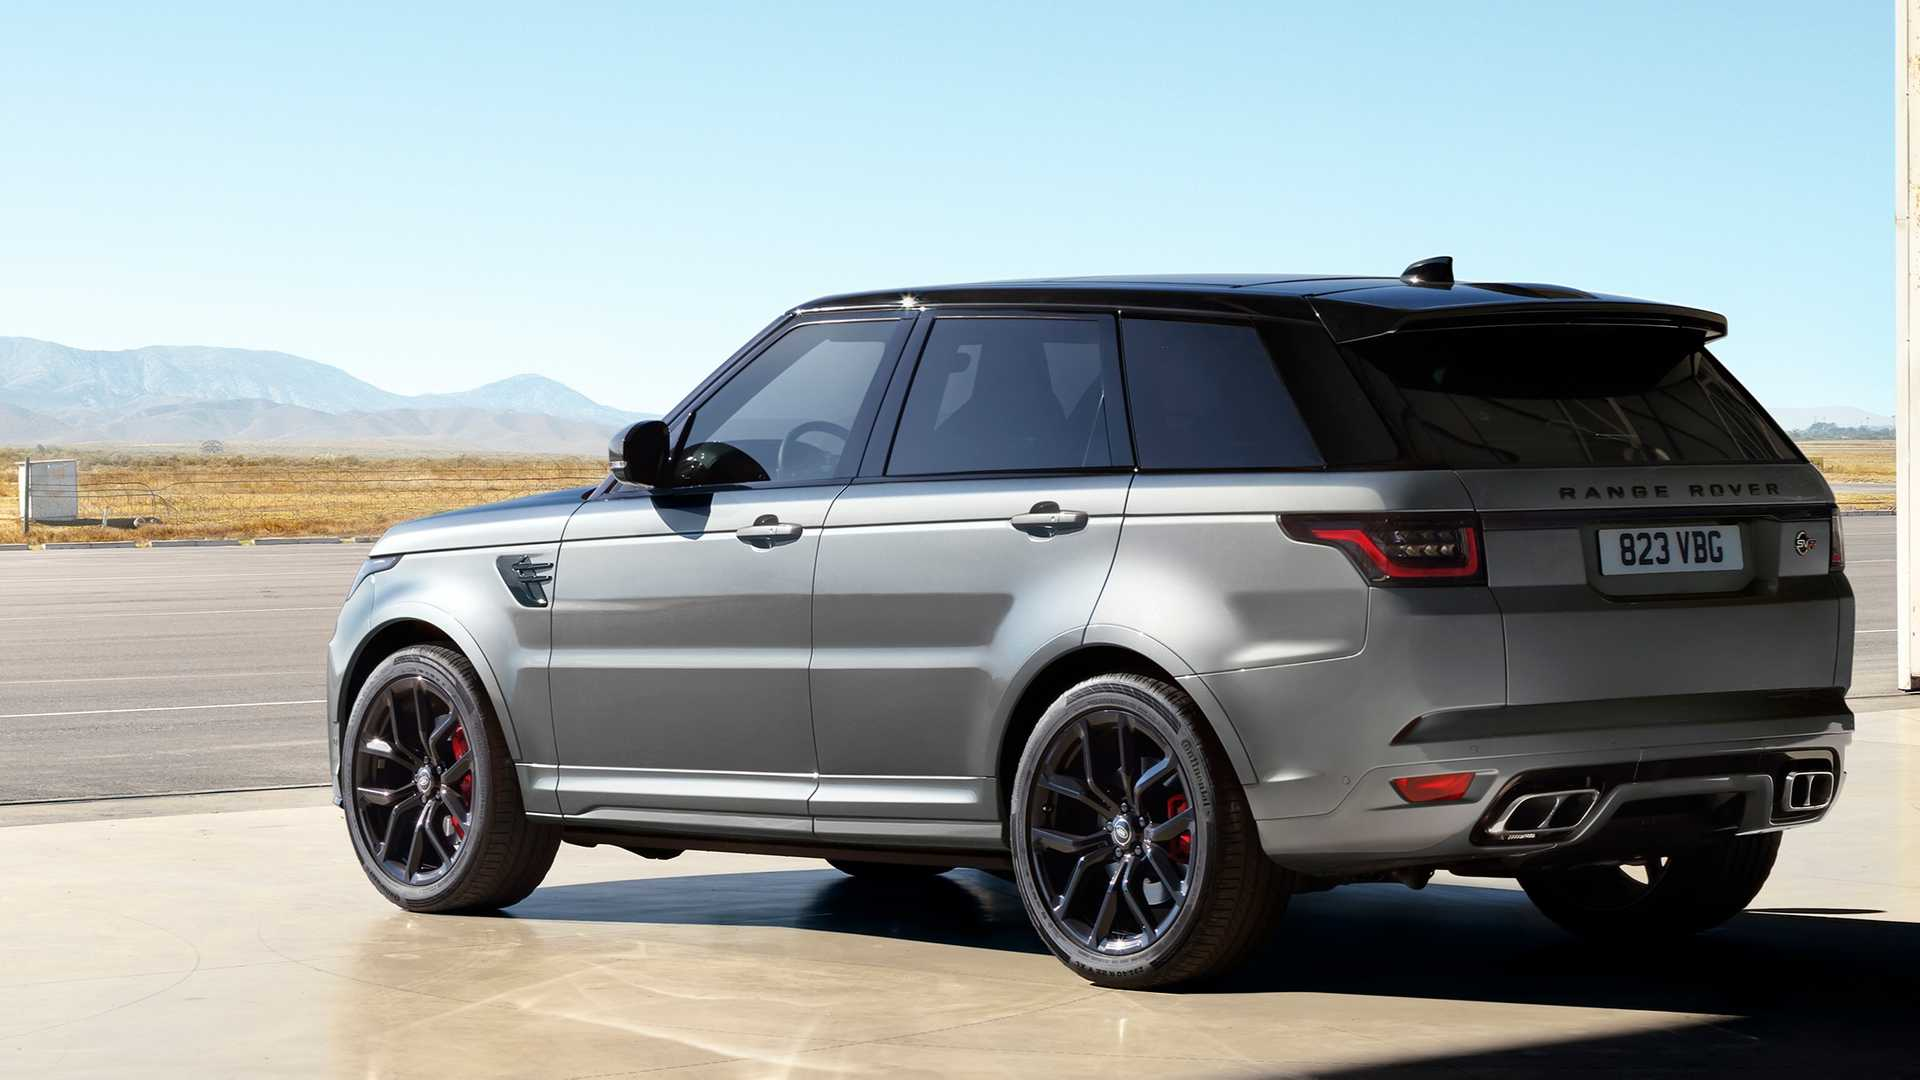 2021 Land rover range rover sport hse suv rear view